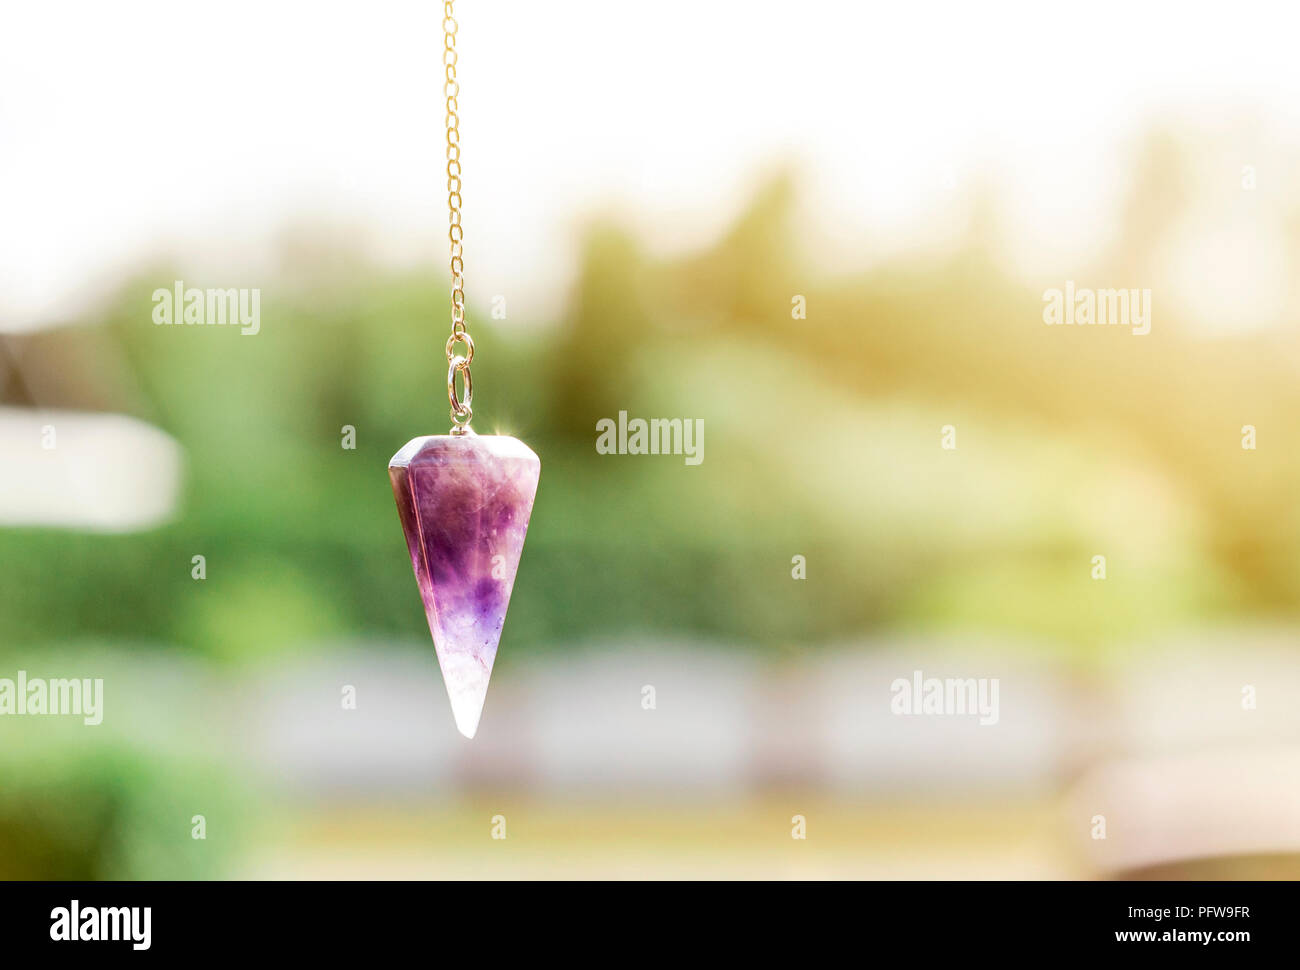 Violet natural Amethyst crystal pendulum hanging on chain on green outdoors nature background. - Stock Image